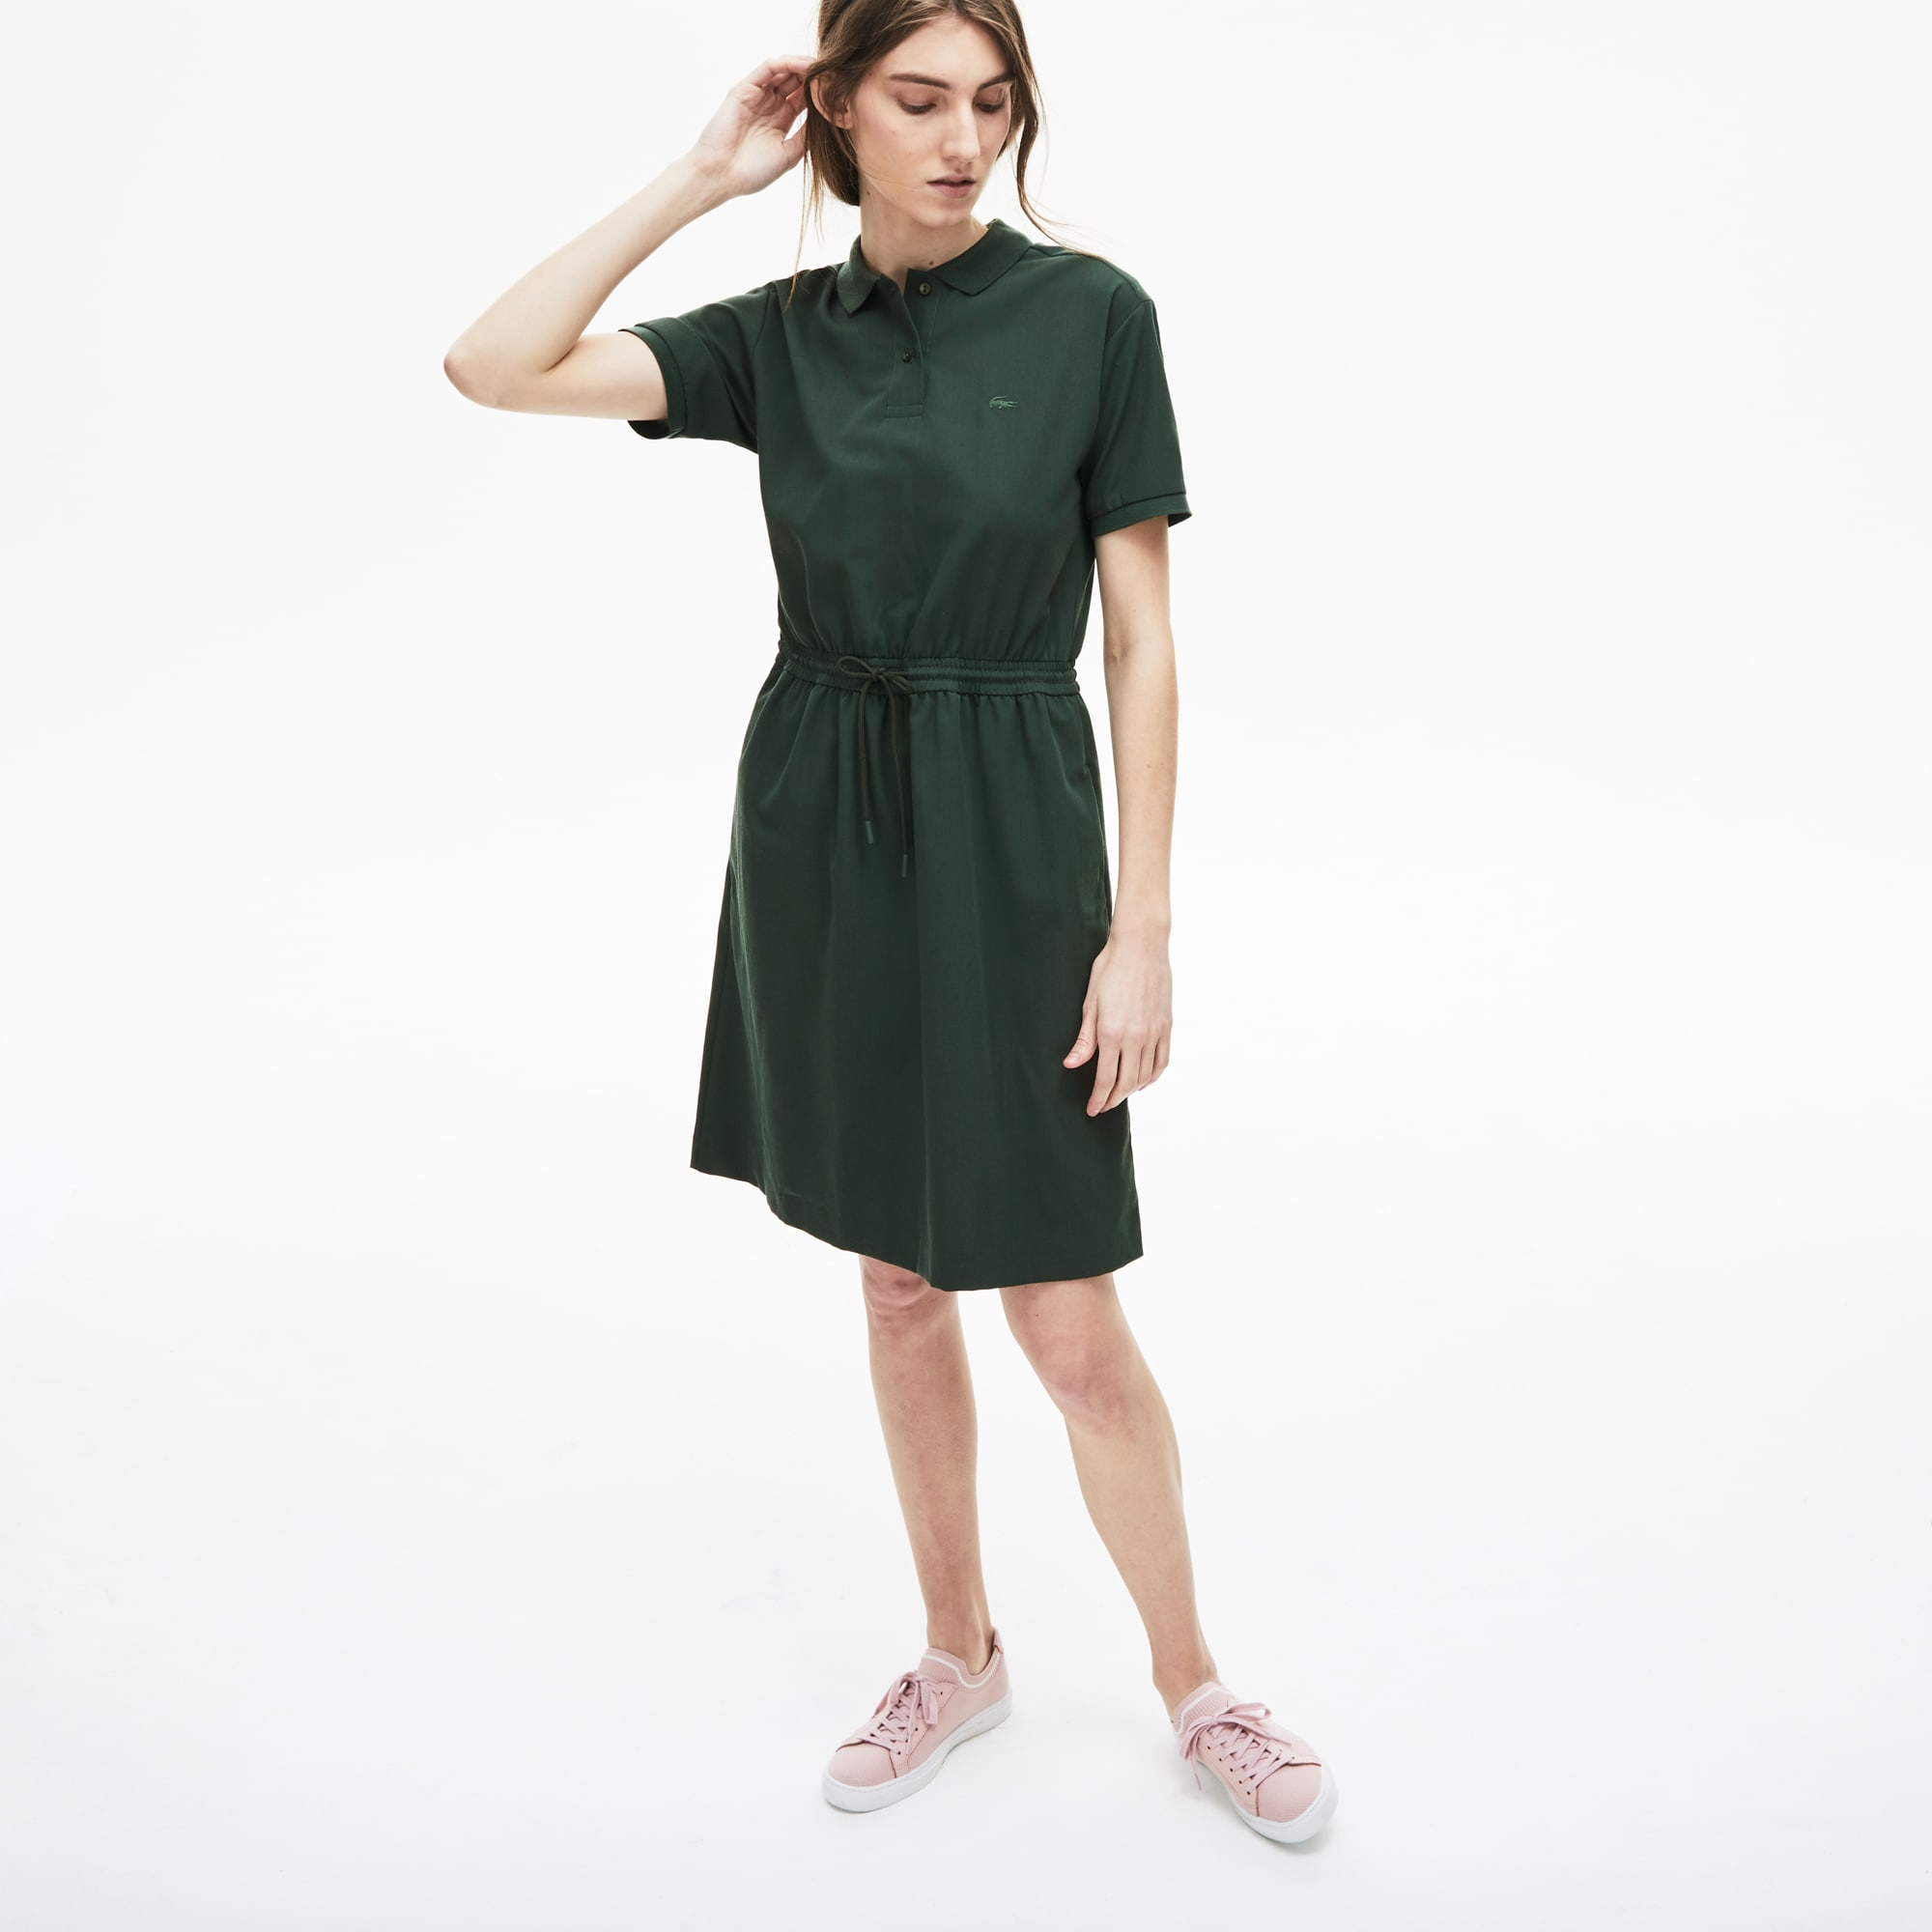 Dresses and Skirts  ecf516520